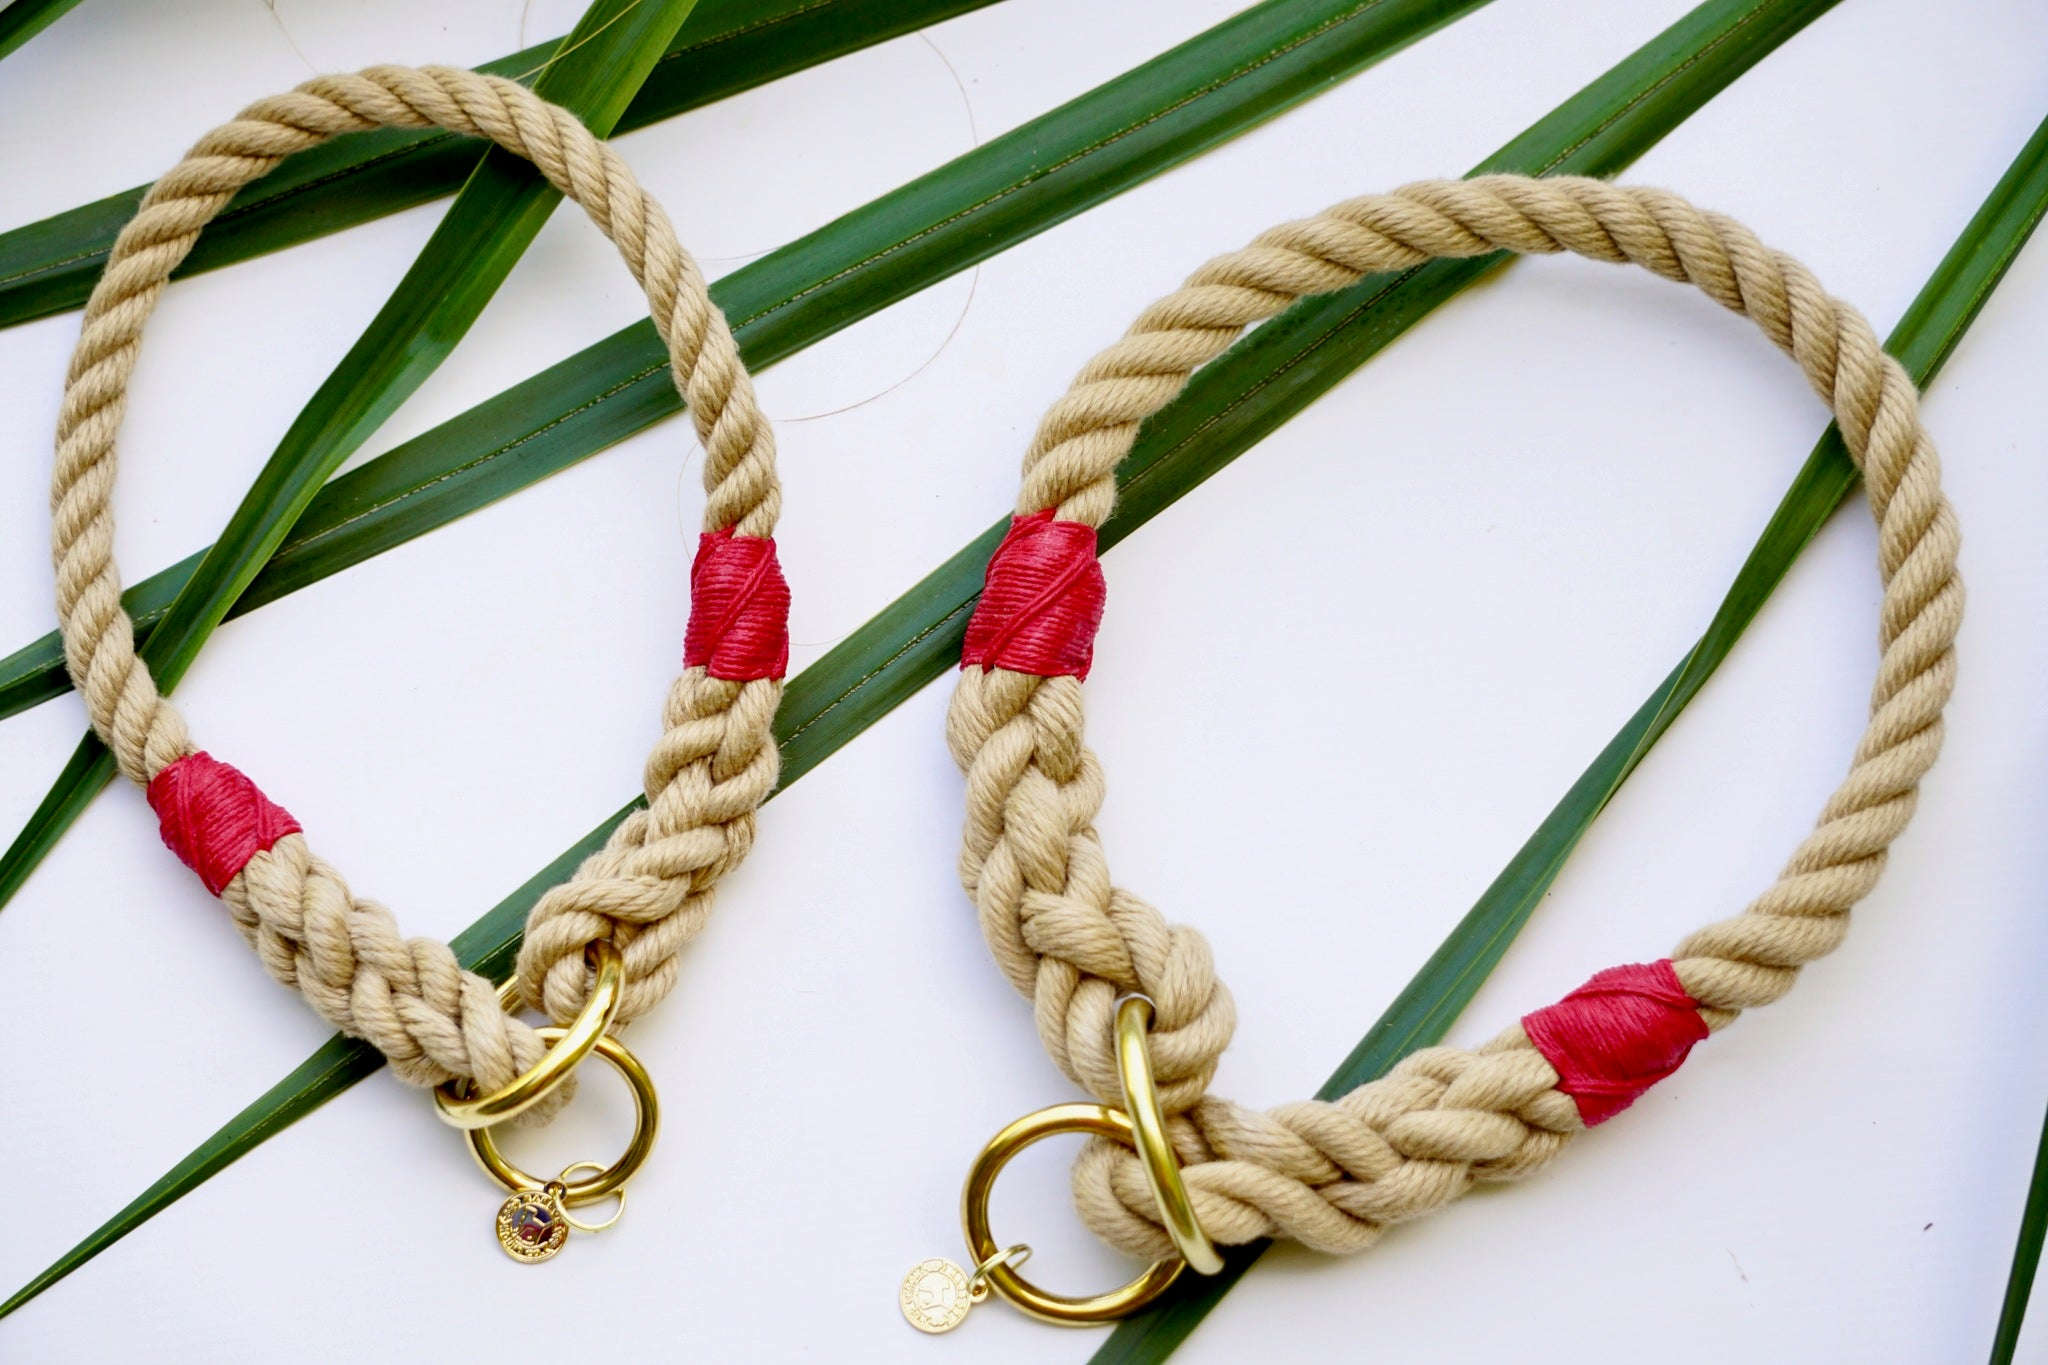 The Nantucket Rope Collar